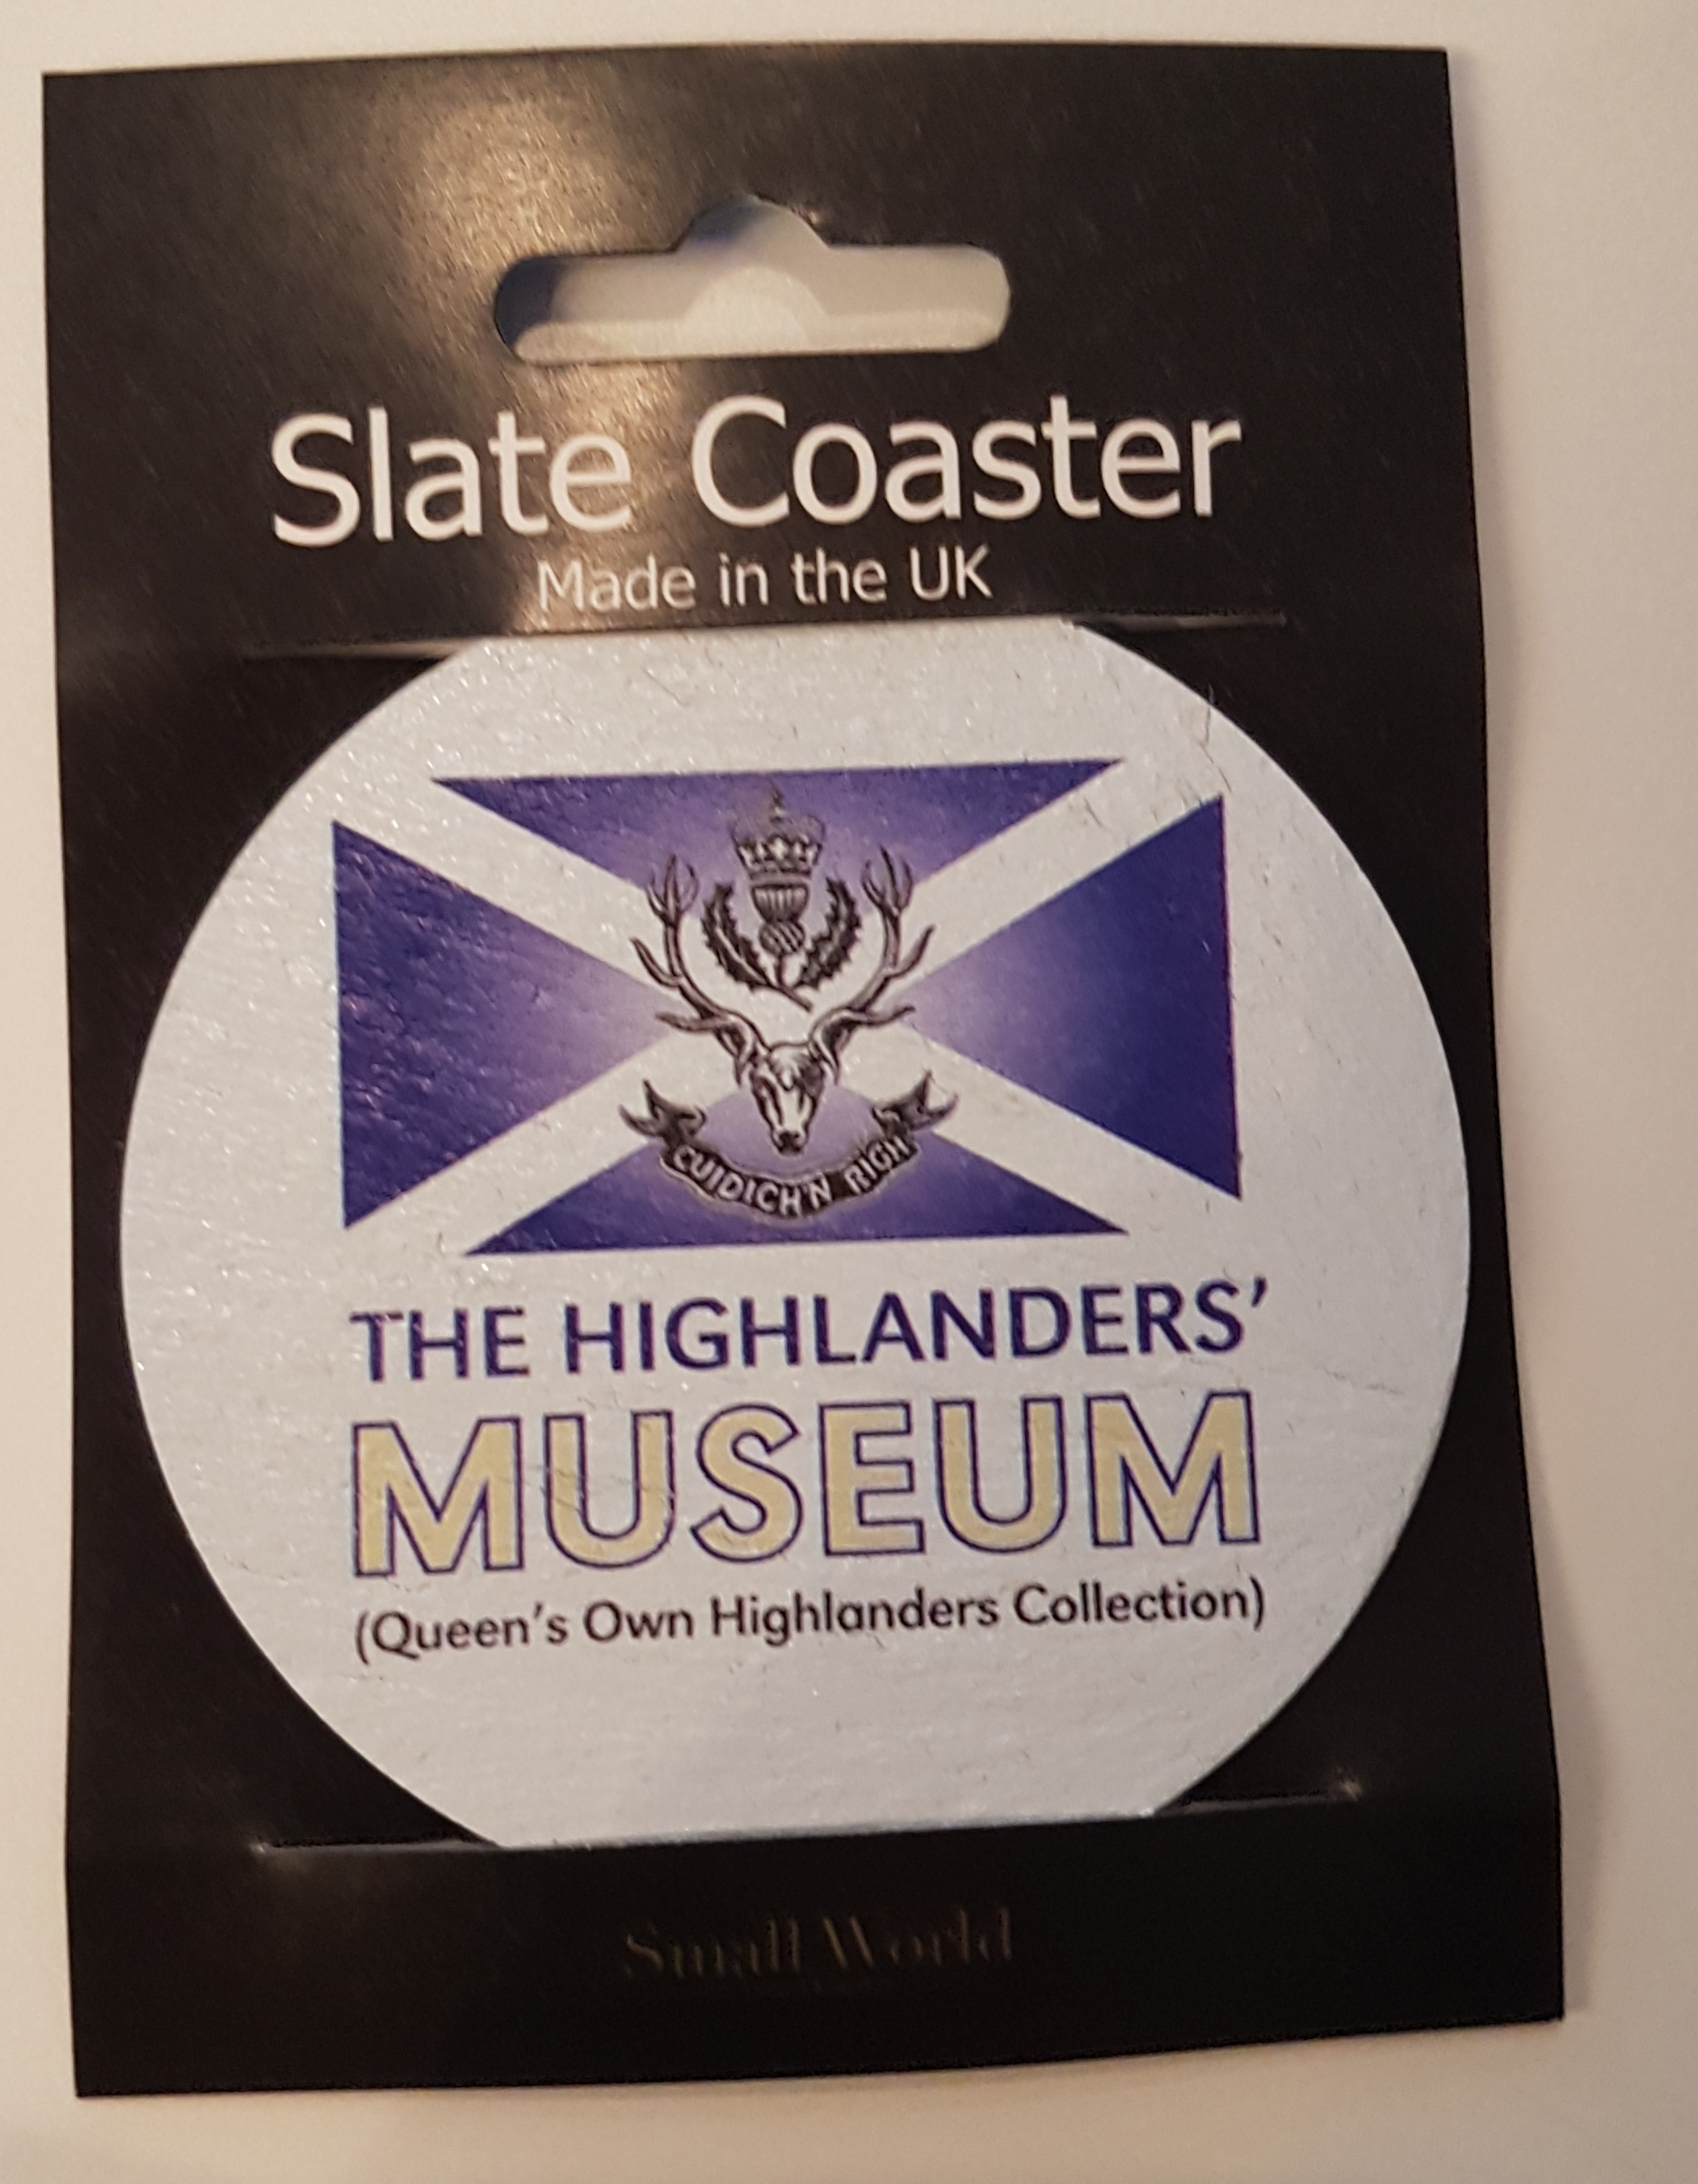 The Highlanders' Museum Slate Coaster